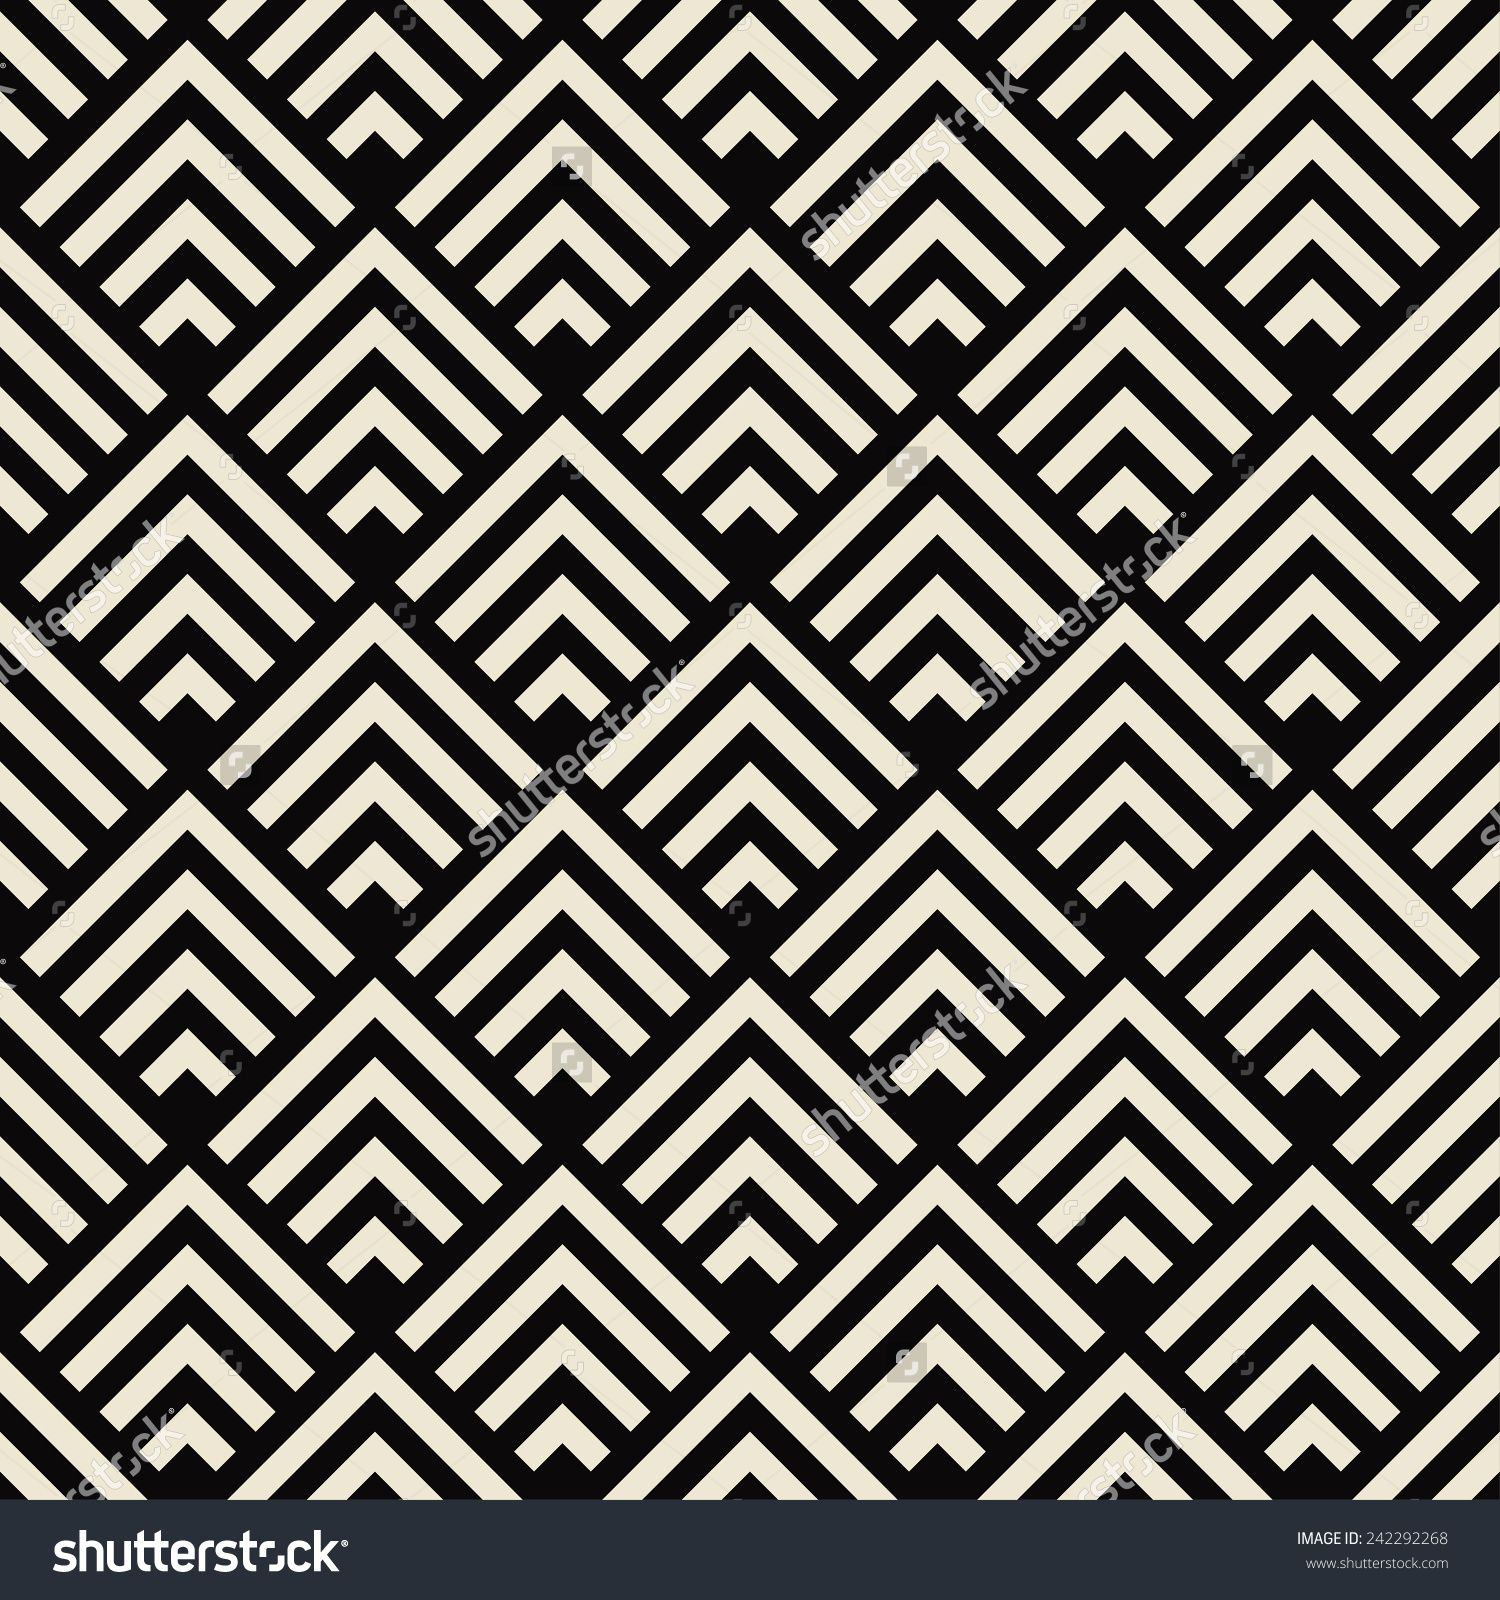 Art Deco Black And White Texture Seamless Geometric Pattern